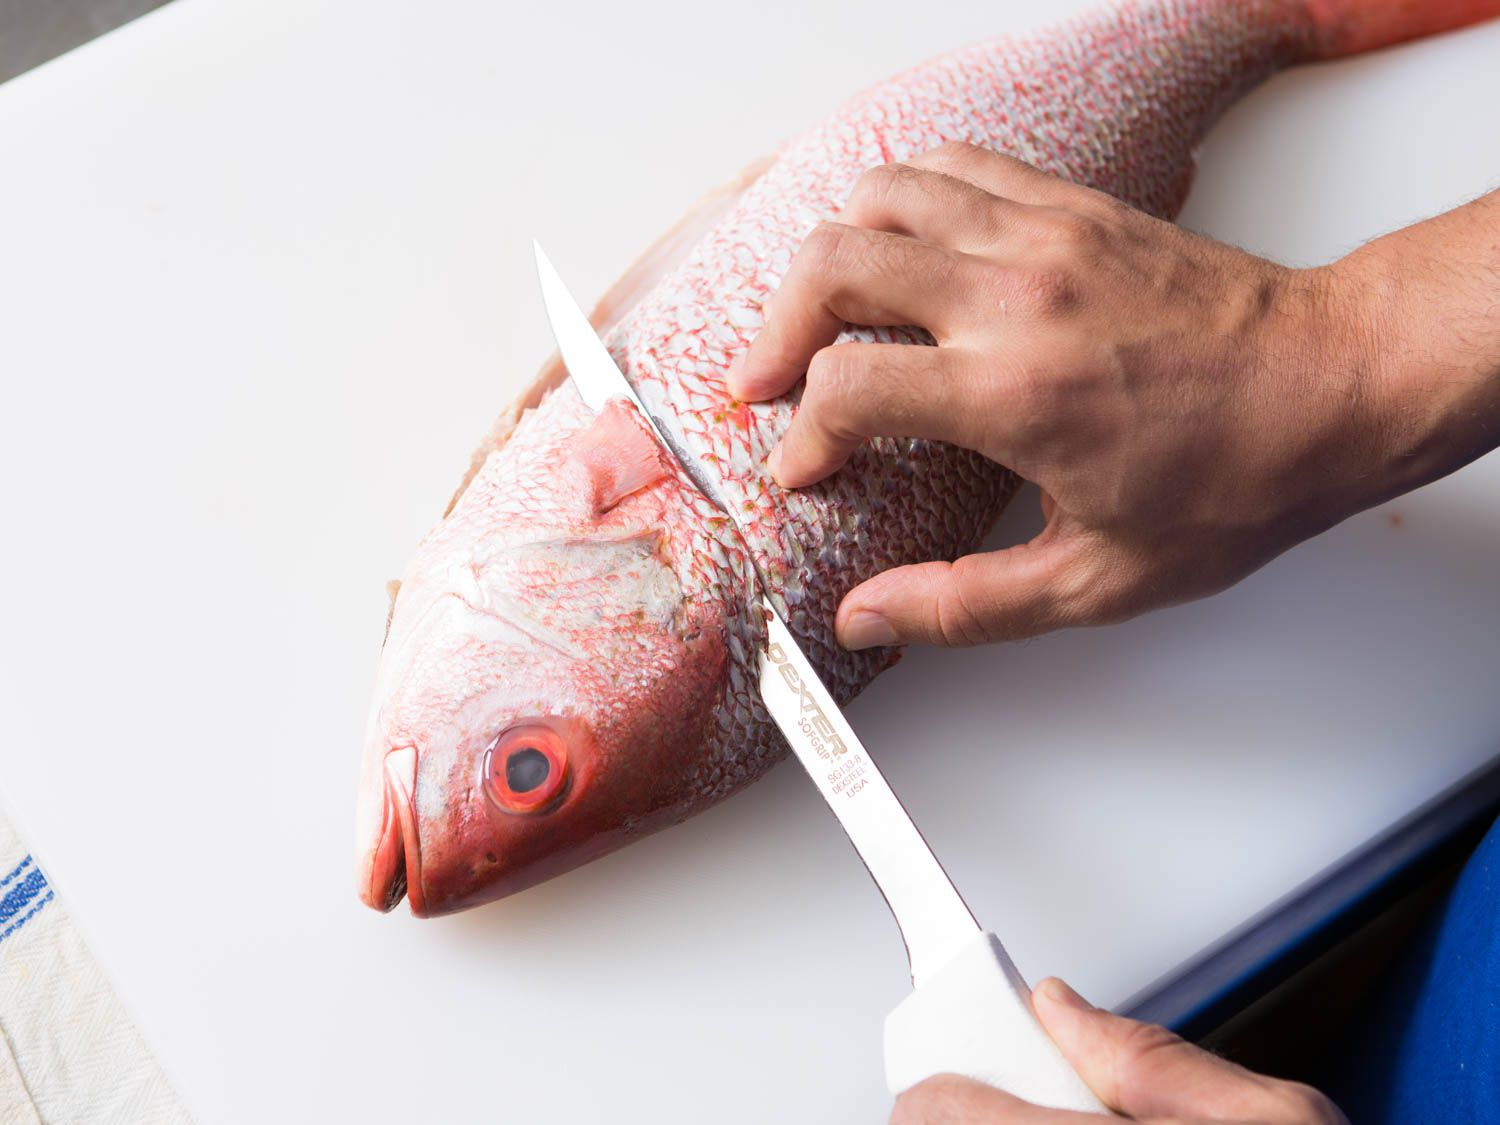 20150922-how-to-fillet-fish-5.jpg